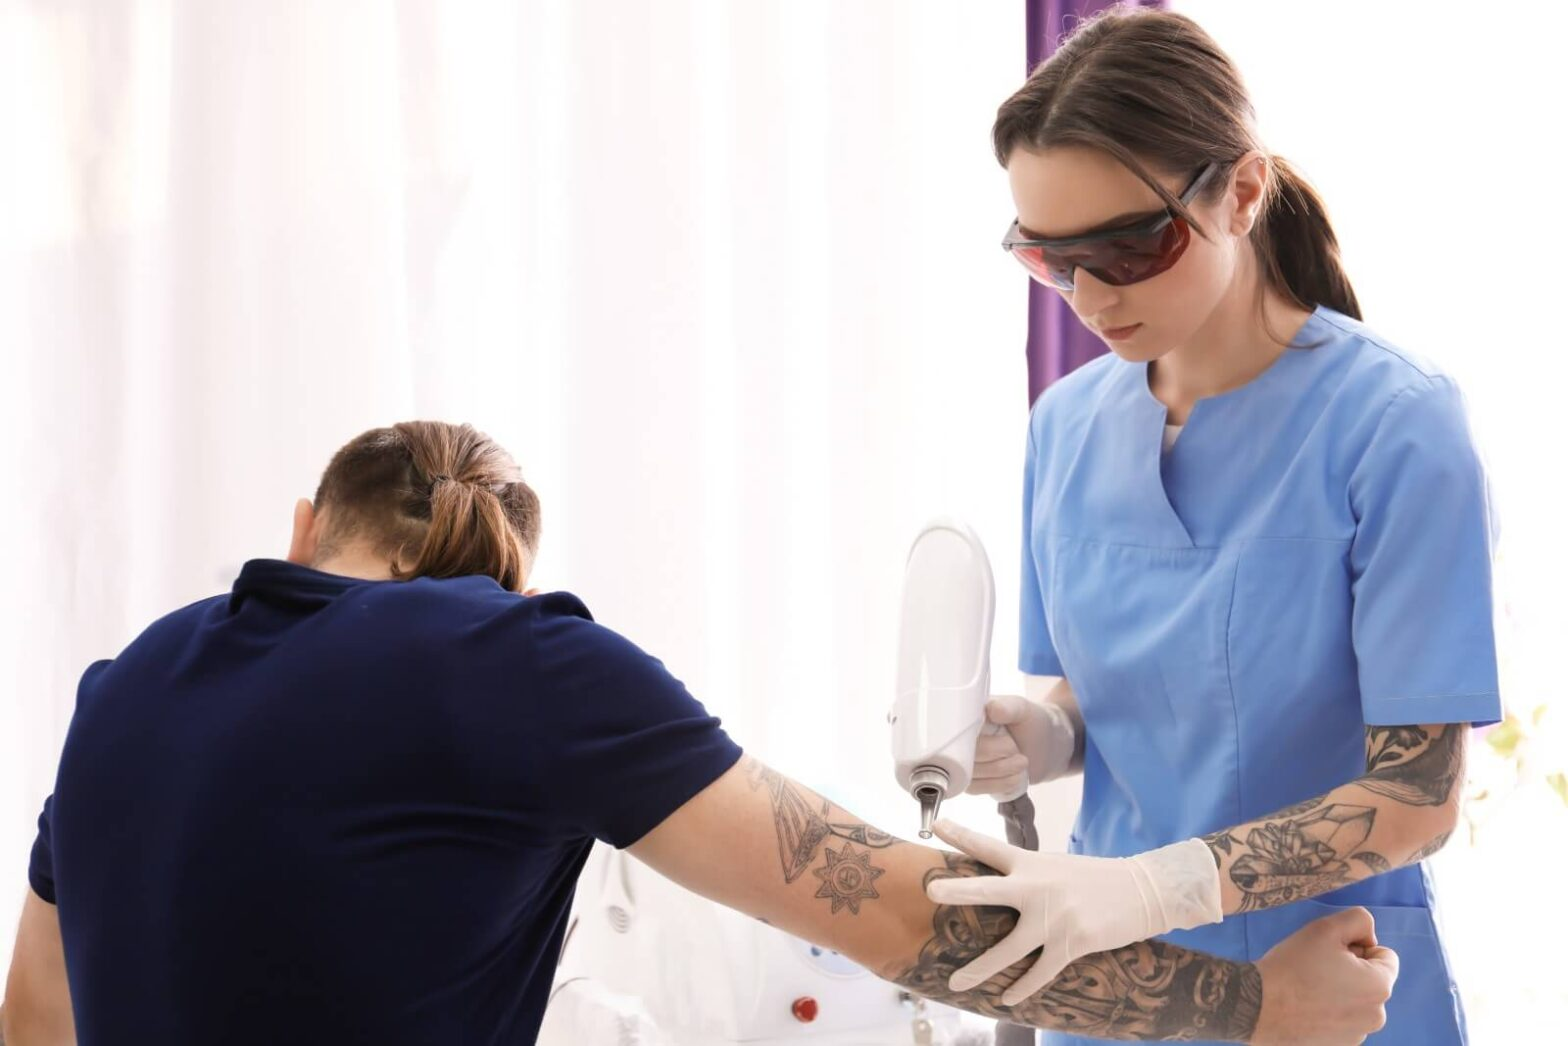 laser tech educates patient about the laser she is using